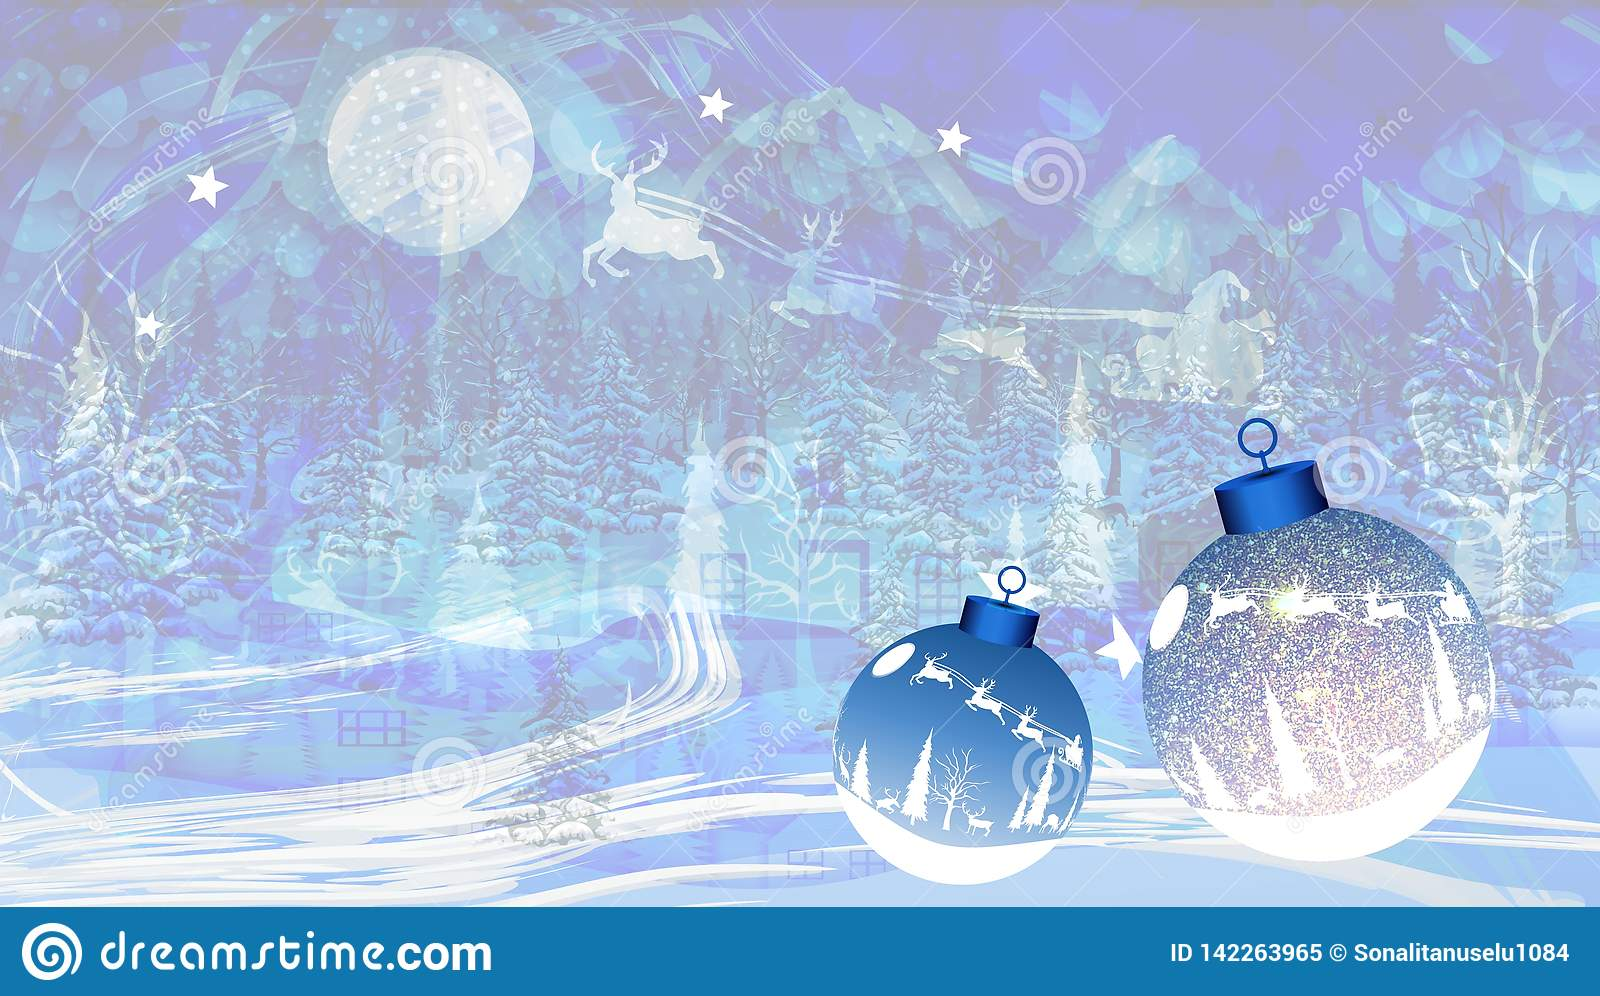 Abstract vector Christmas textured background with snow, Santa and Christmas balls. vector illustration.